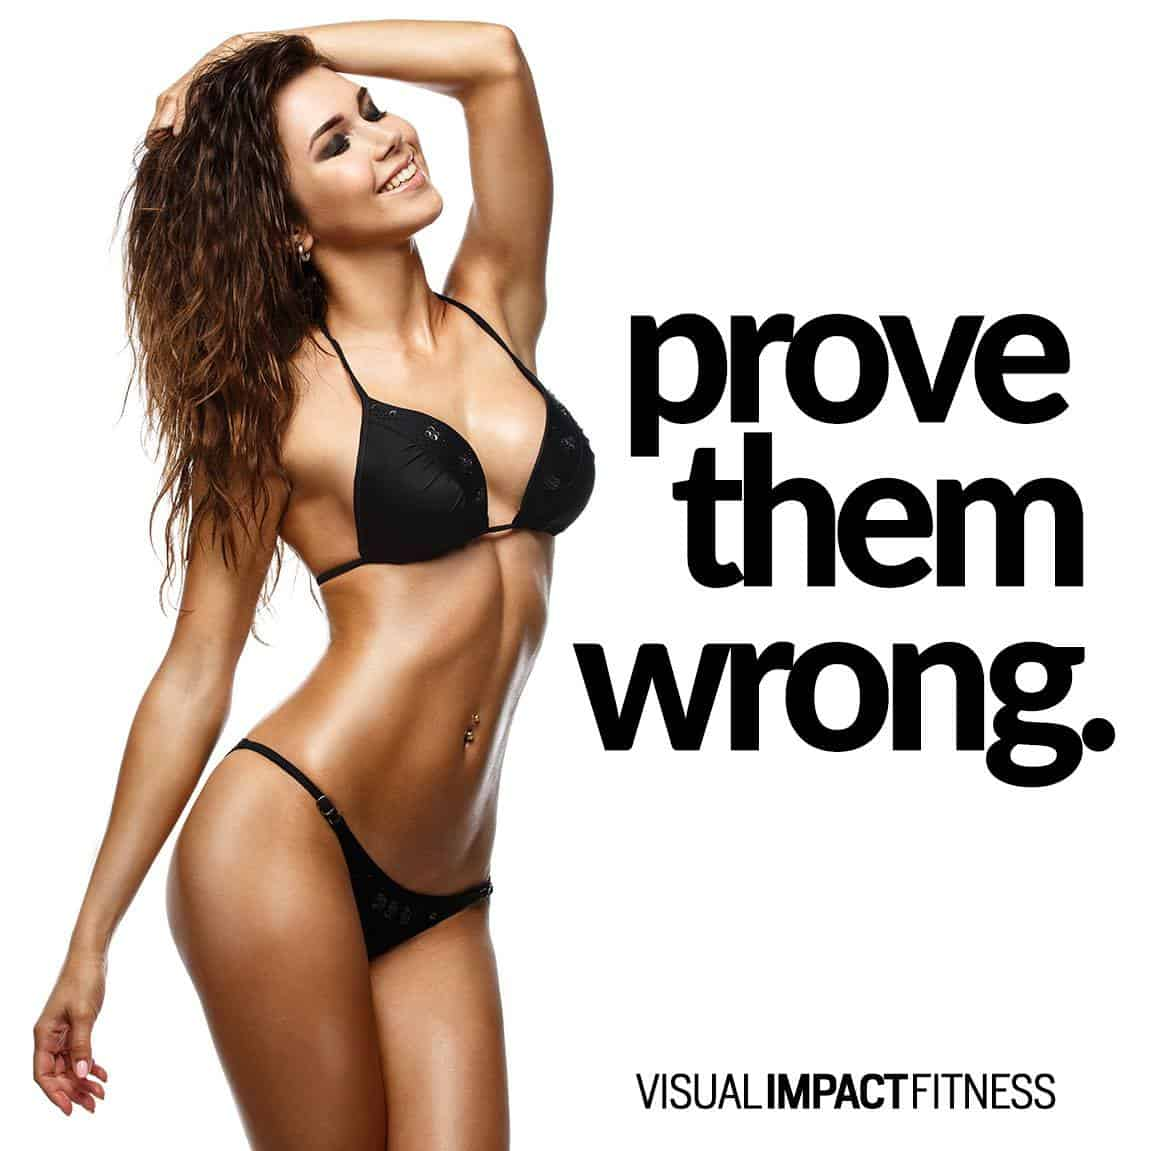 Prove them wrong